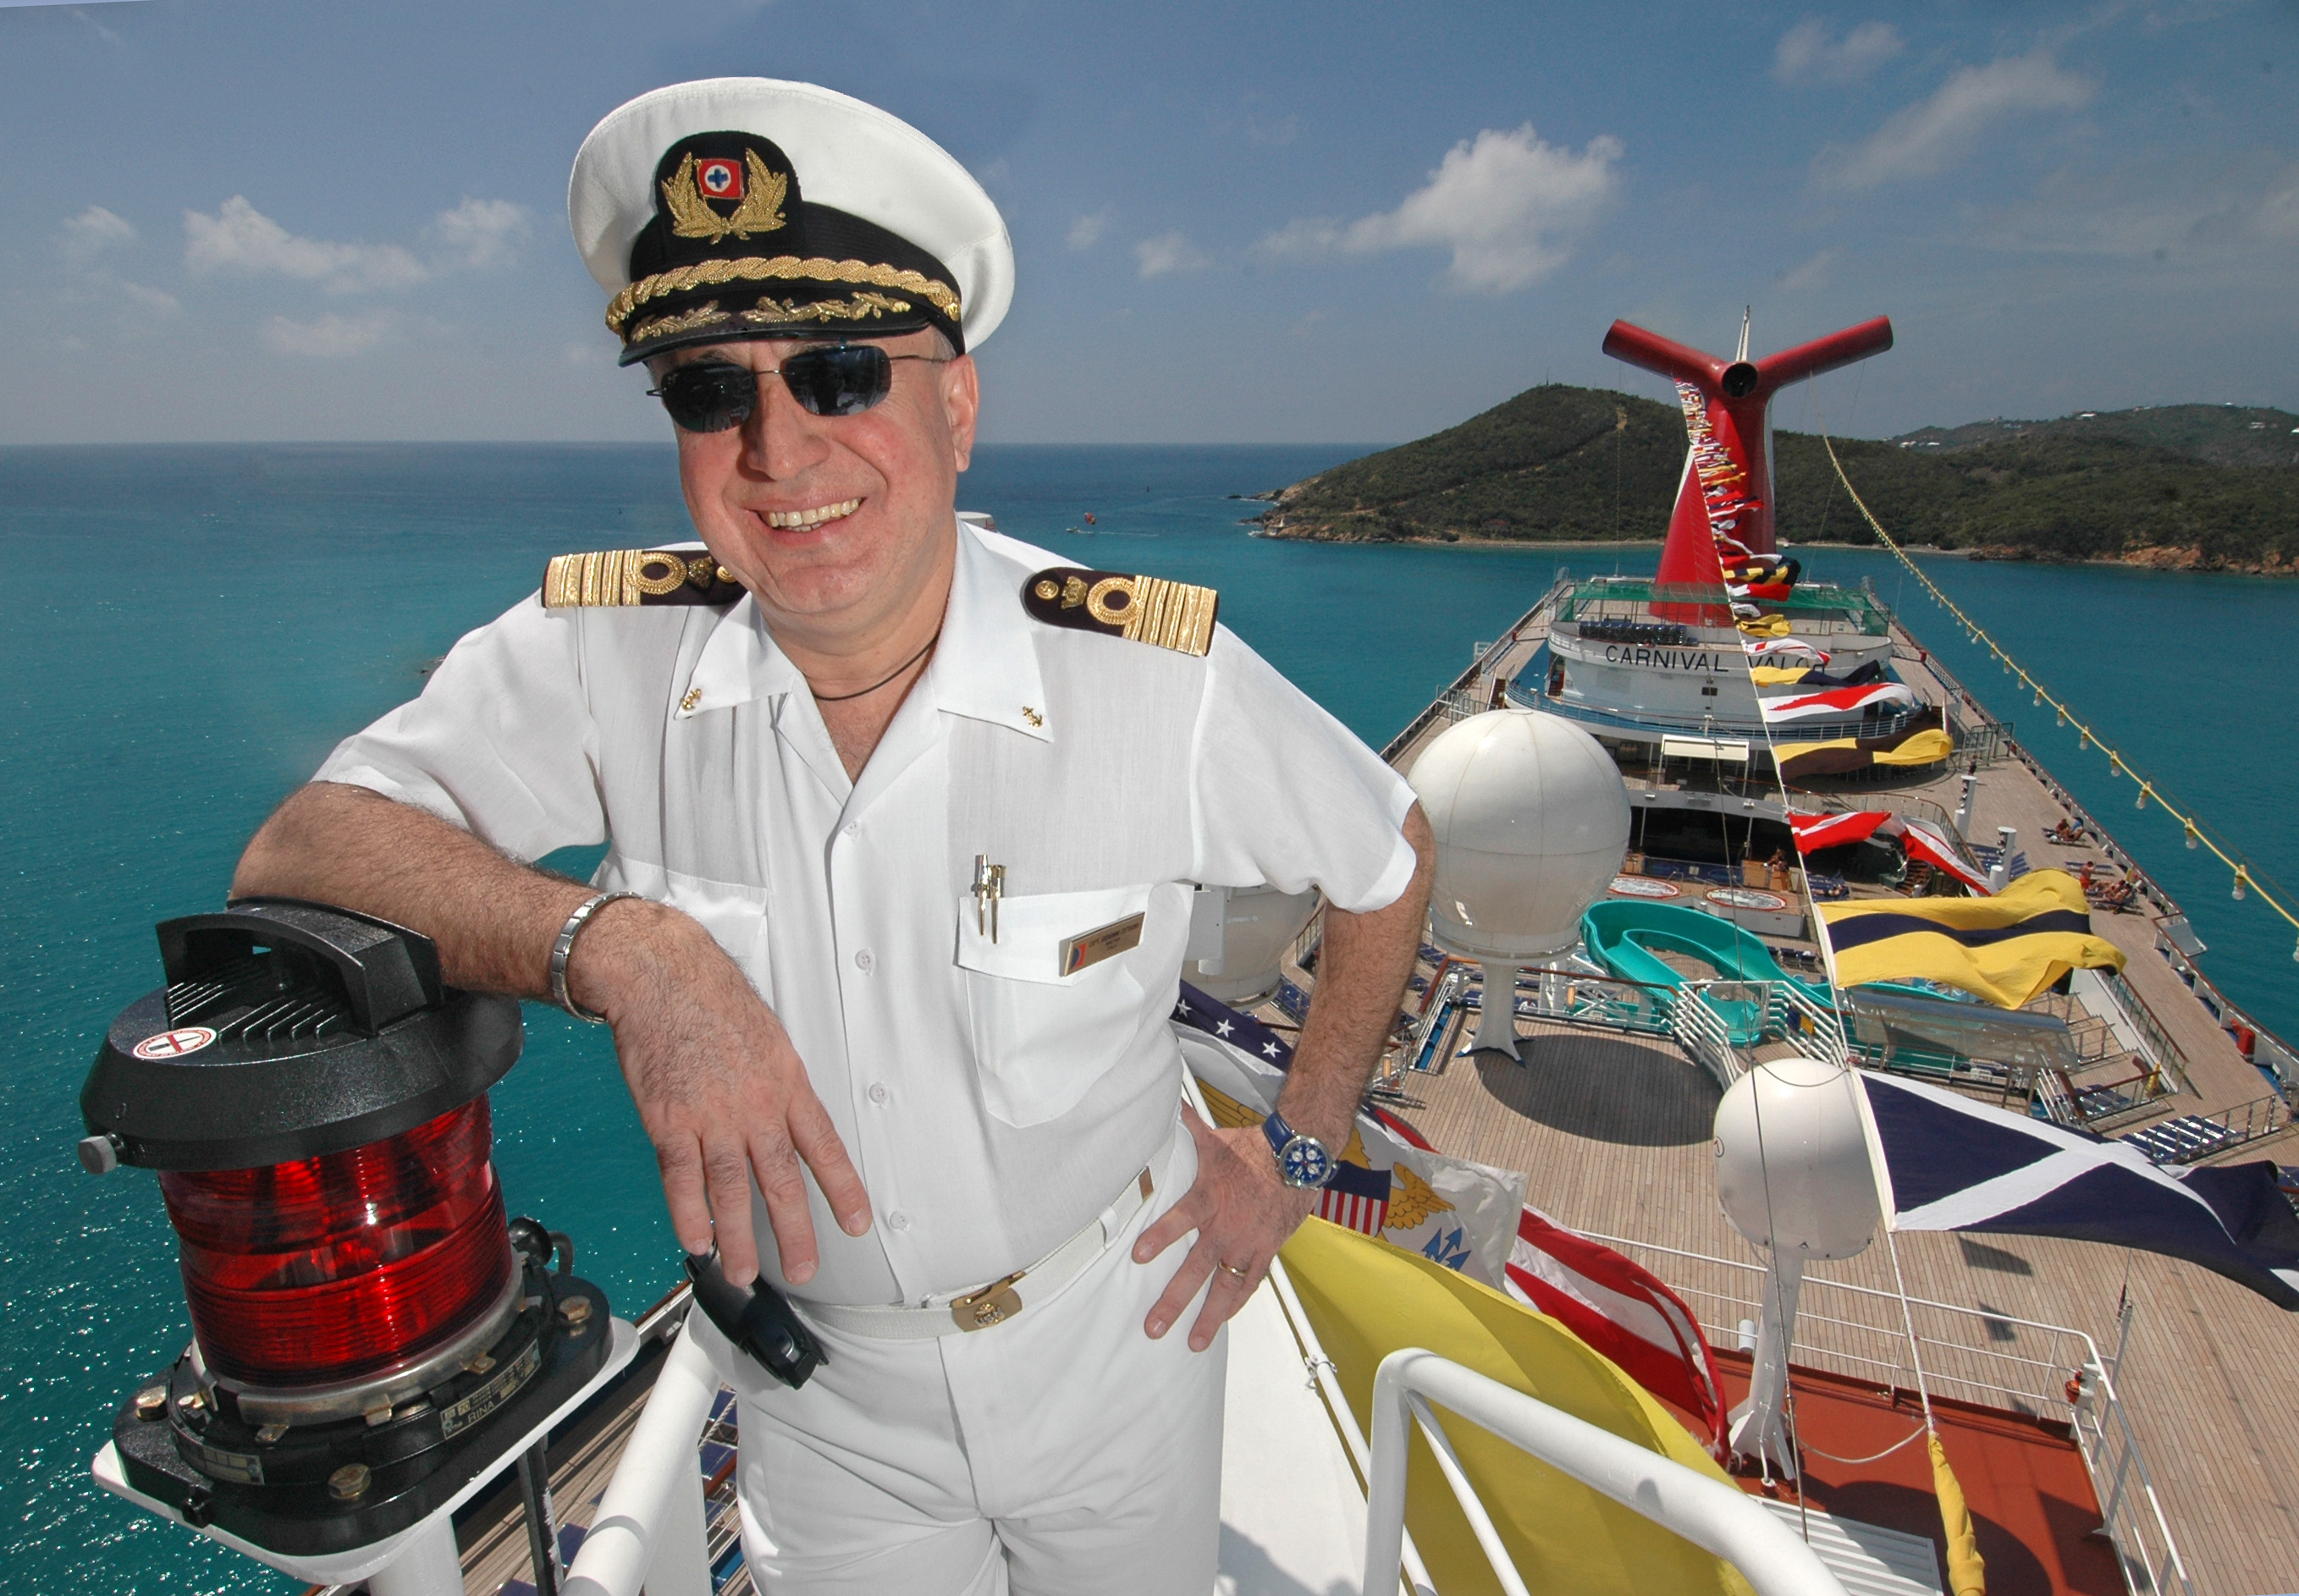 Carnival Cruise Line News - How much does a cruise ship captain make